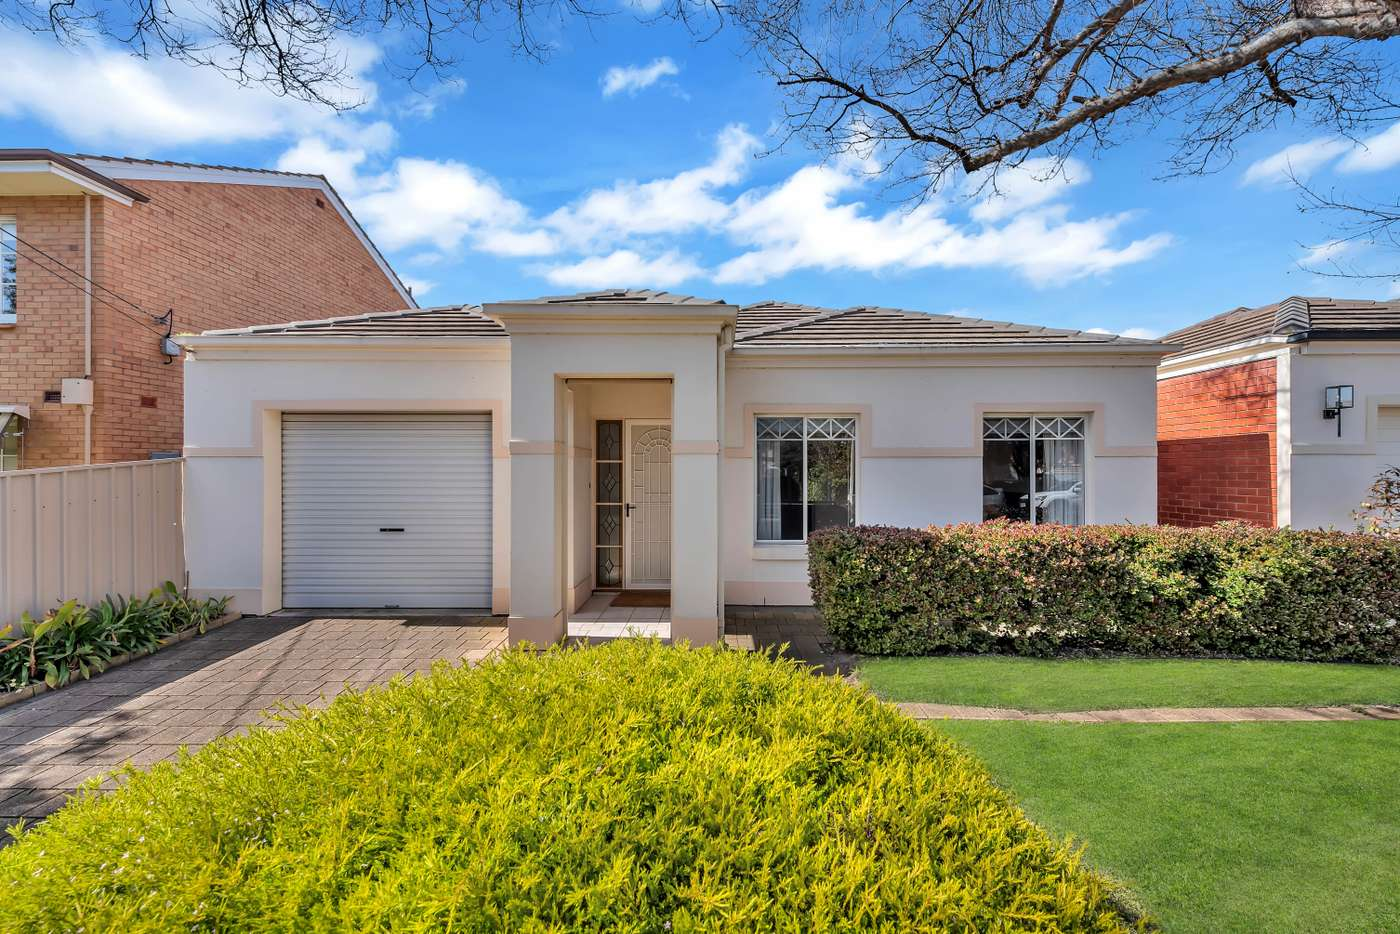 Main view of Homely house listing, 3 Wenlock Street, Brighton SA 5048